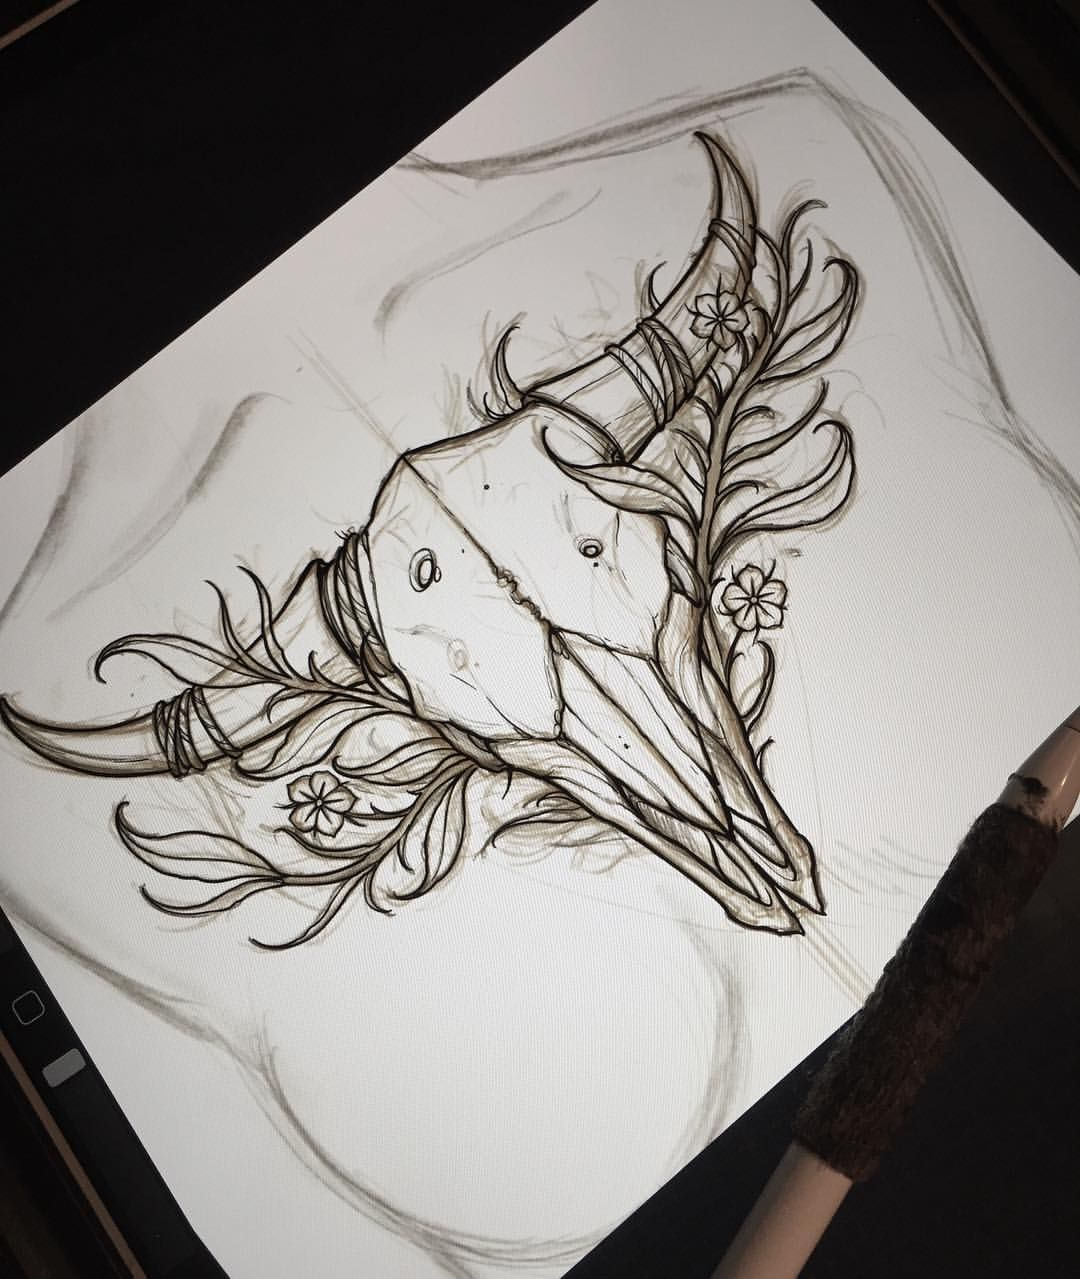 Chest Piece Sketch Ready For This Week @cannibal.lecter